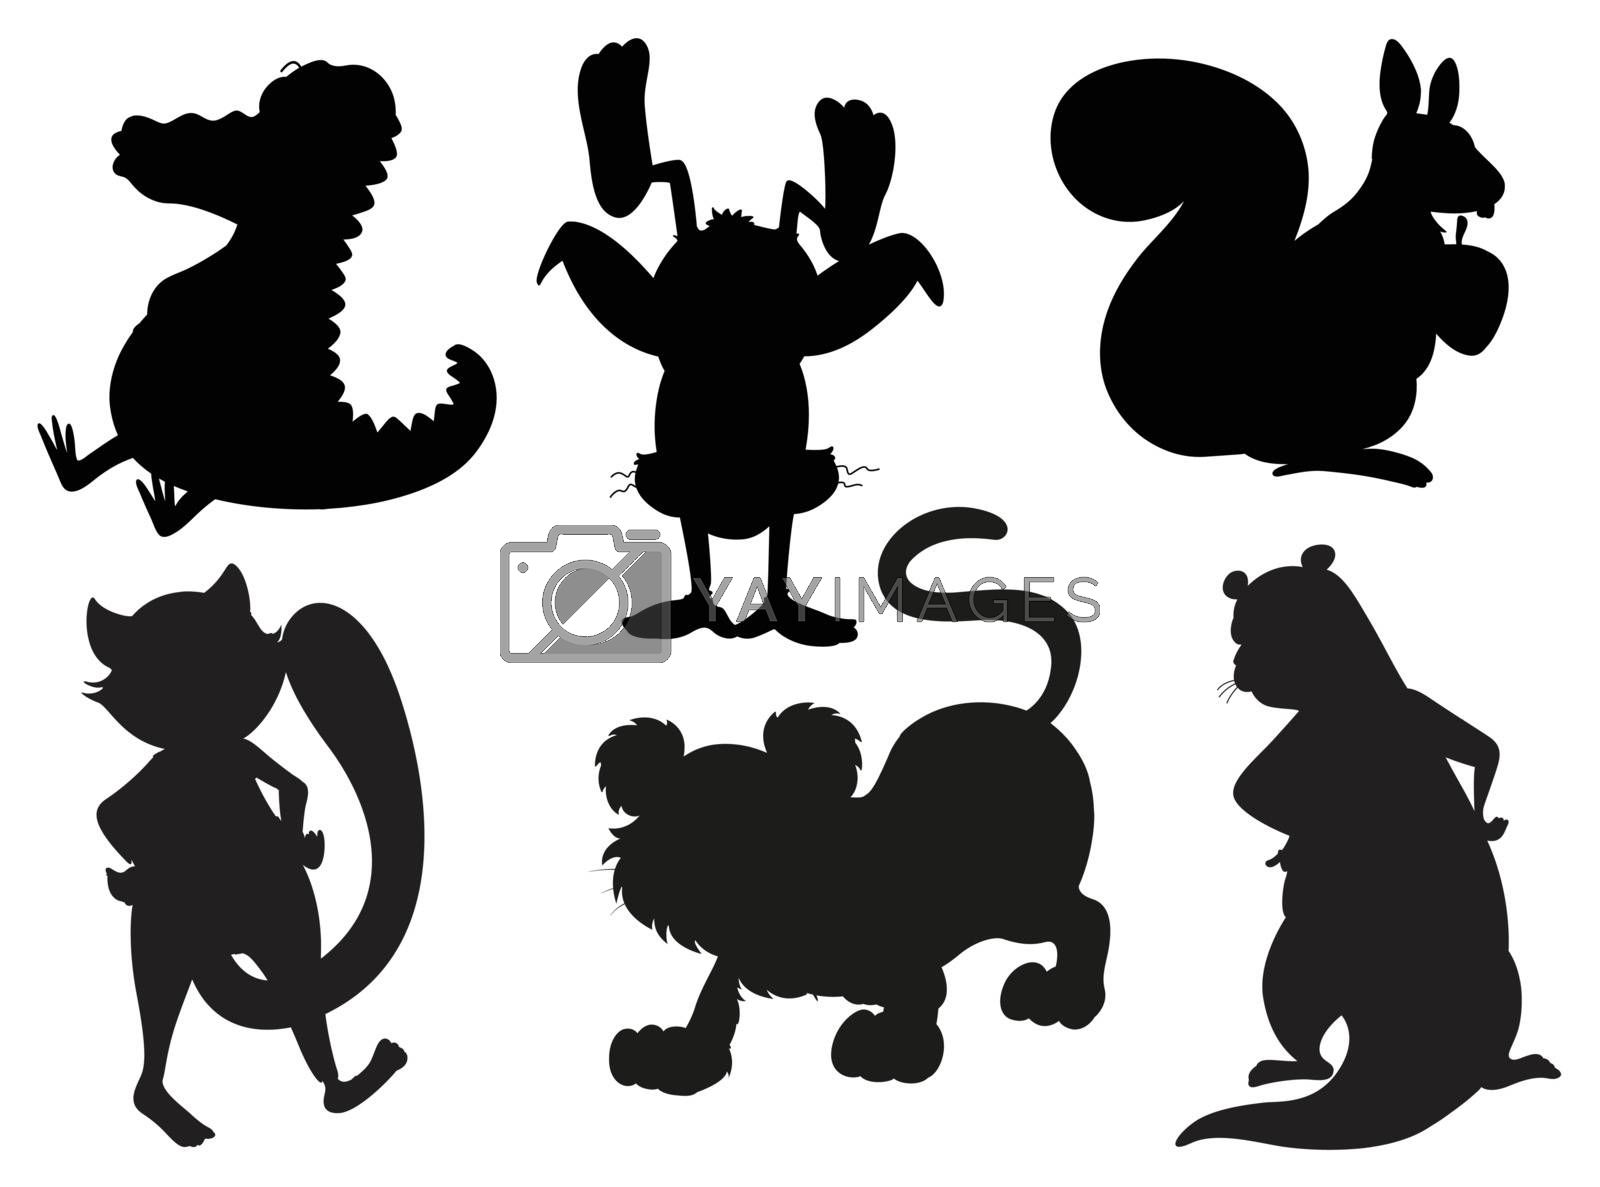 Illustration of the silhouettes of animals in gray and black colors on a white background